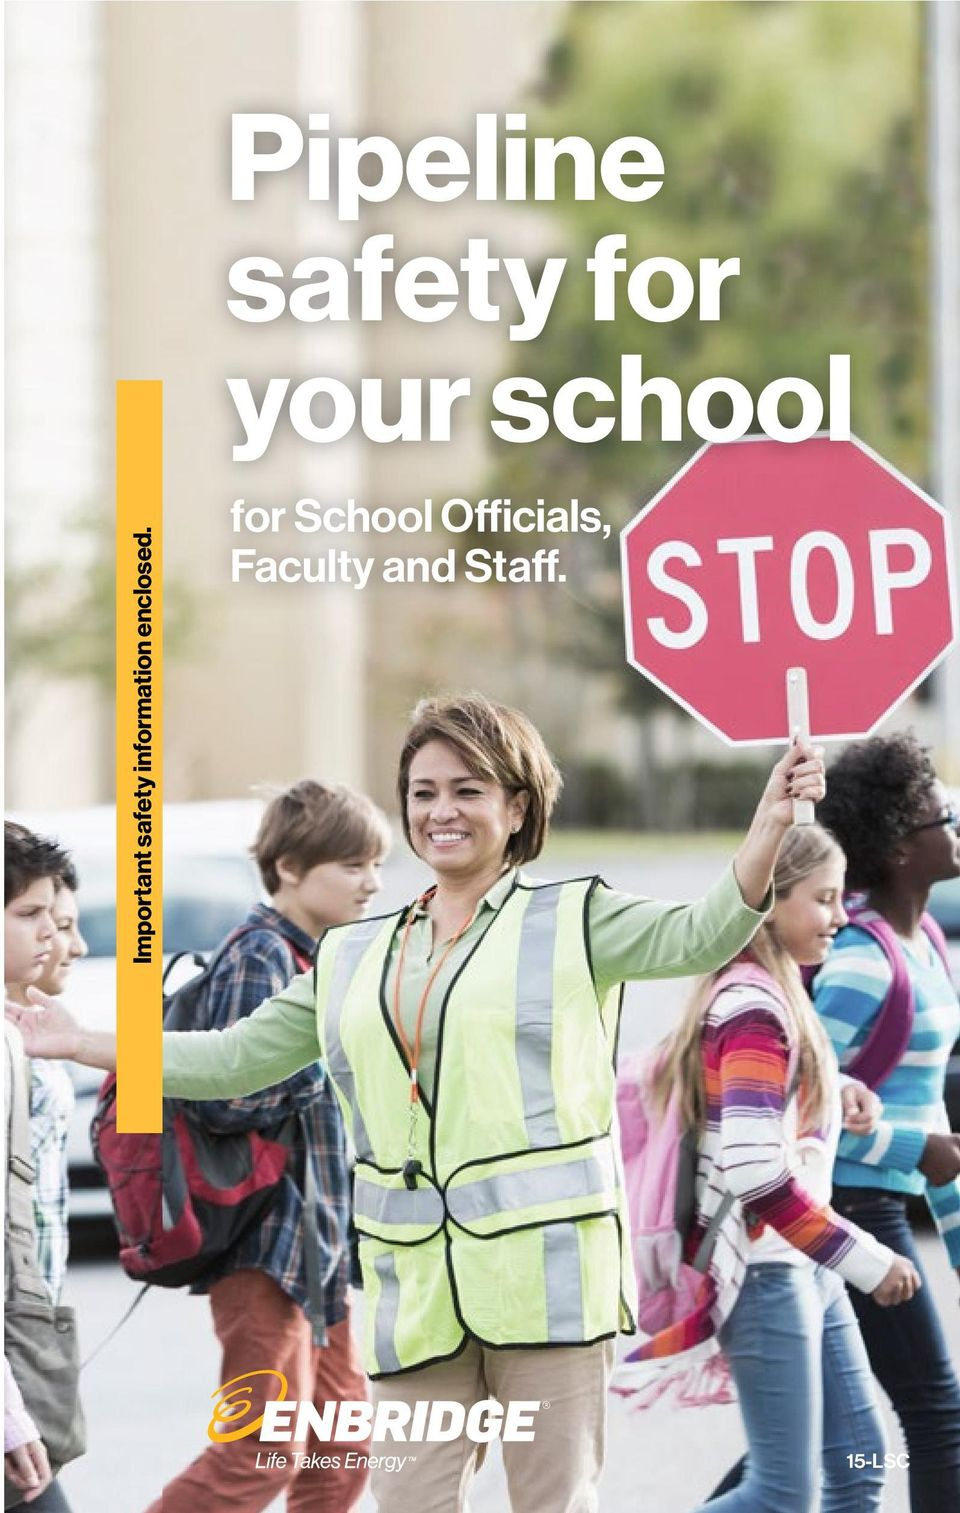 It is important that your read and share this safety school If located in Mississippi, call: information with other officials, faculty and staff, bus drivers, maintenance workers and anyone who may